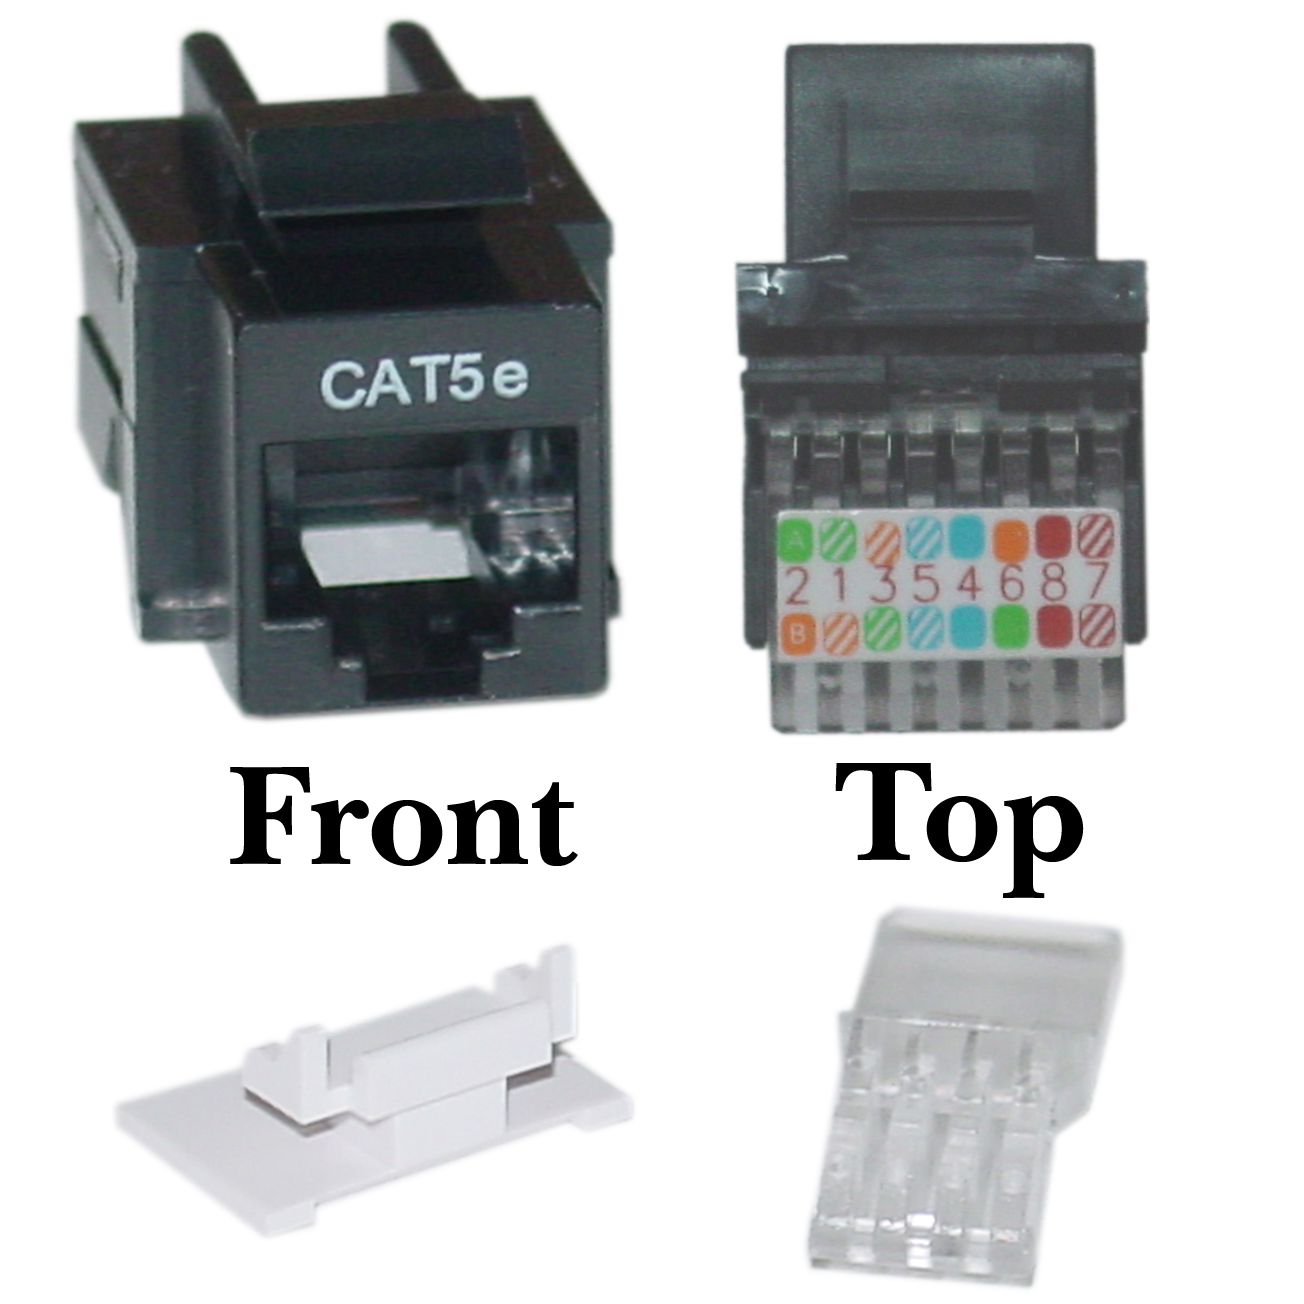 hight resolution of jack white further rj45 phone wiring diagram also cat5e wall jack